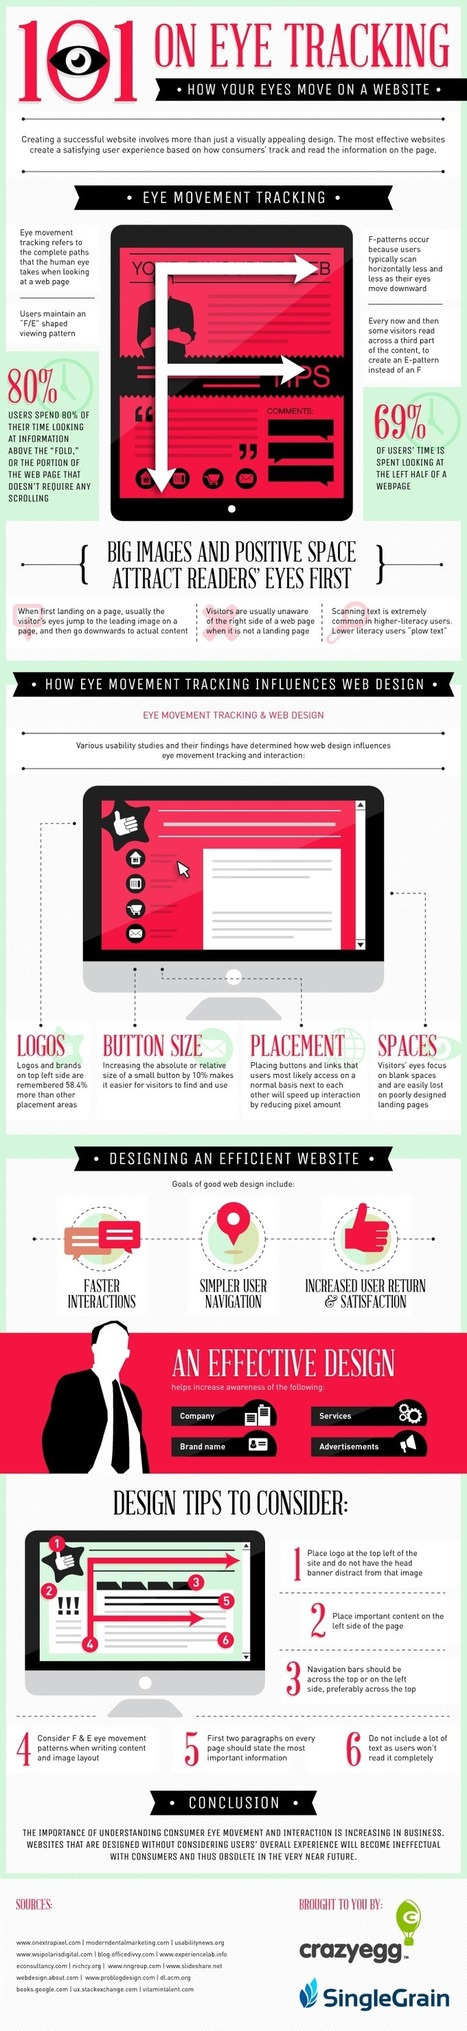 EYES and How They MOVE Around A Website [infographic] | MarketingHits | Scoop.it